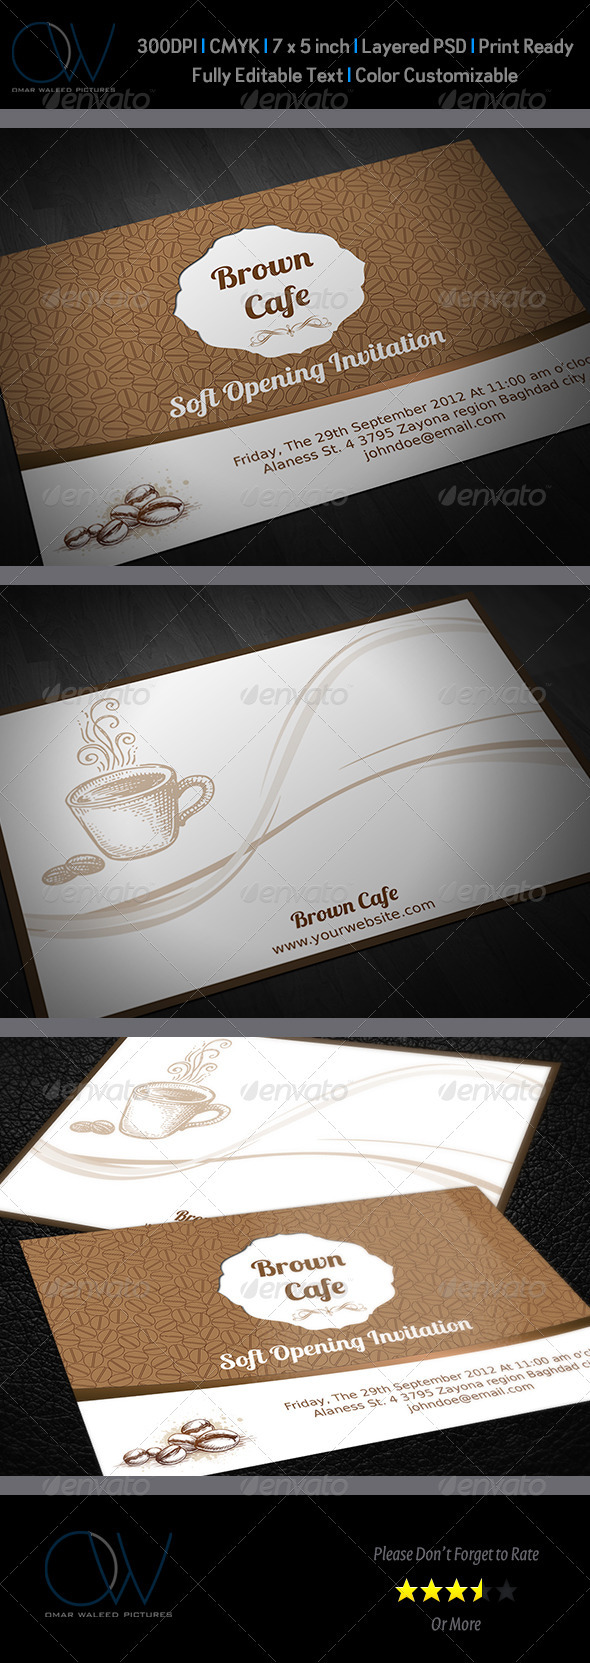 Cafe Invitation Card - Invitations Cards & Invites